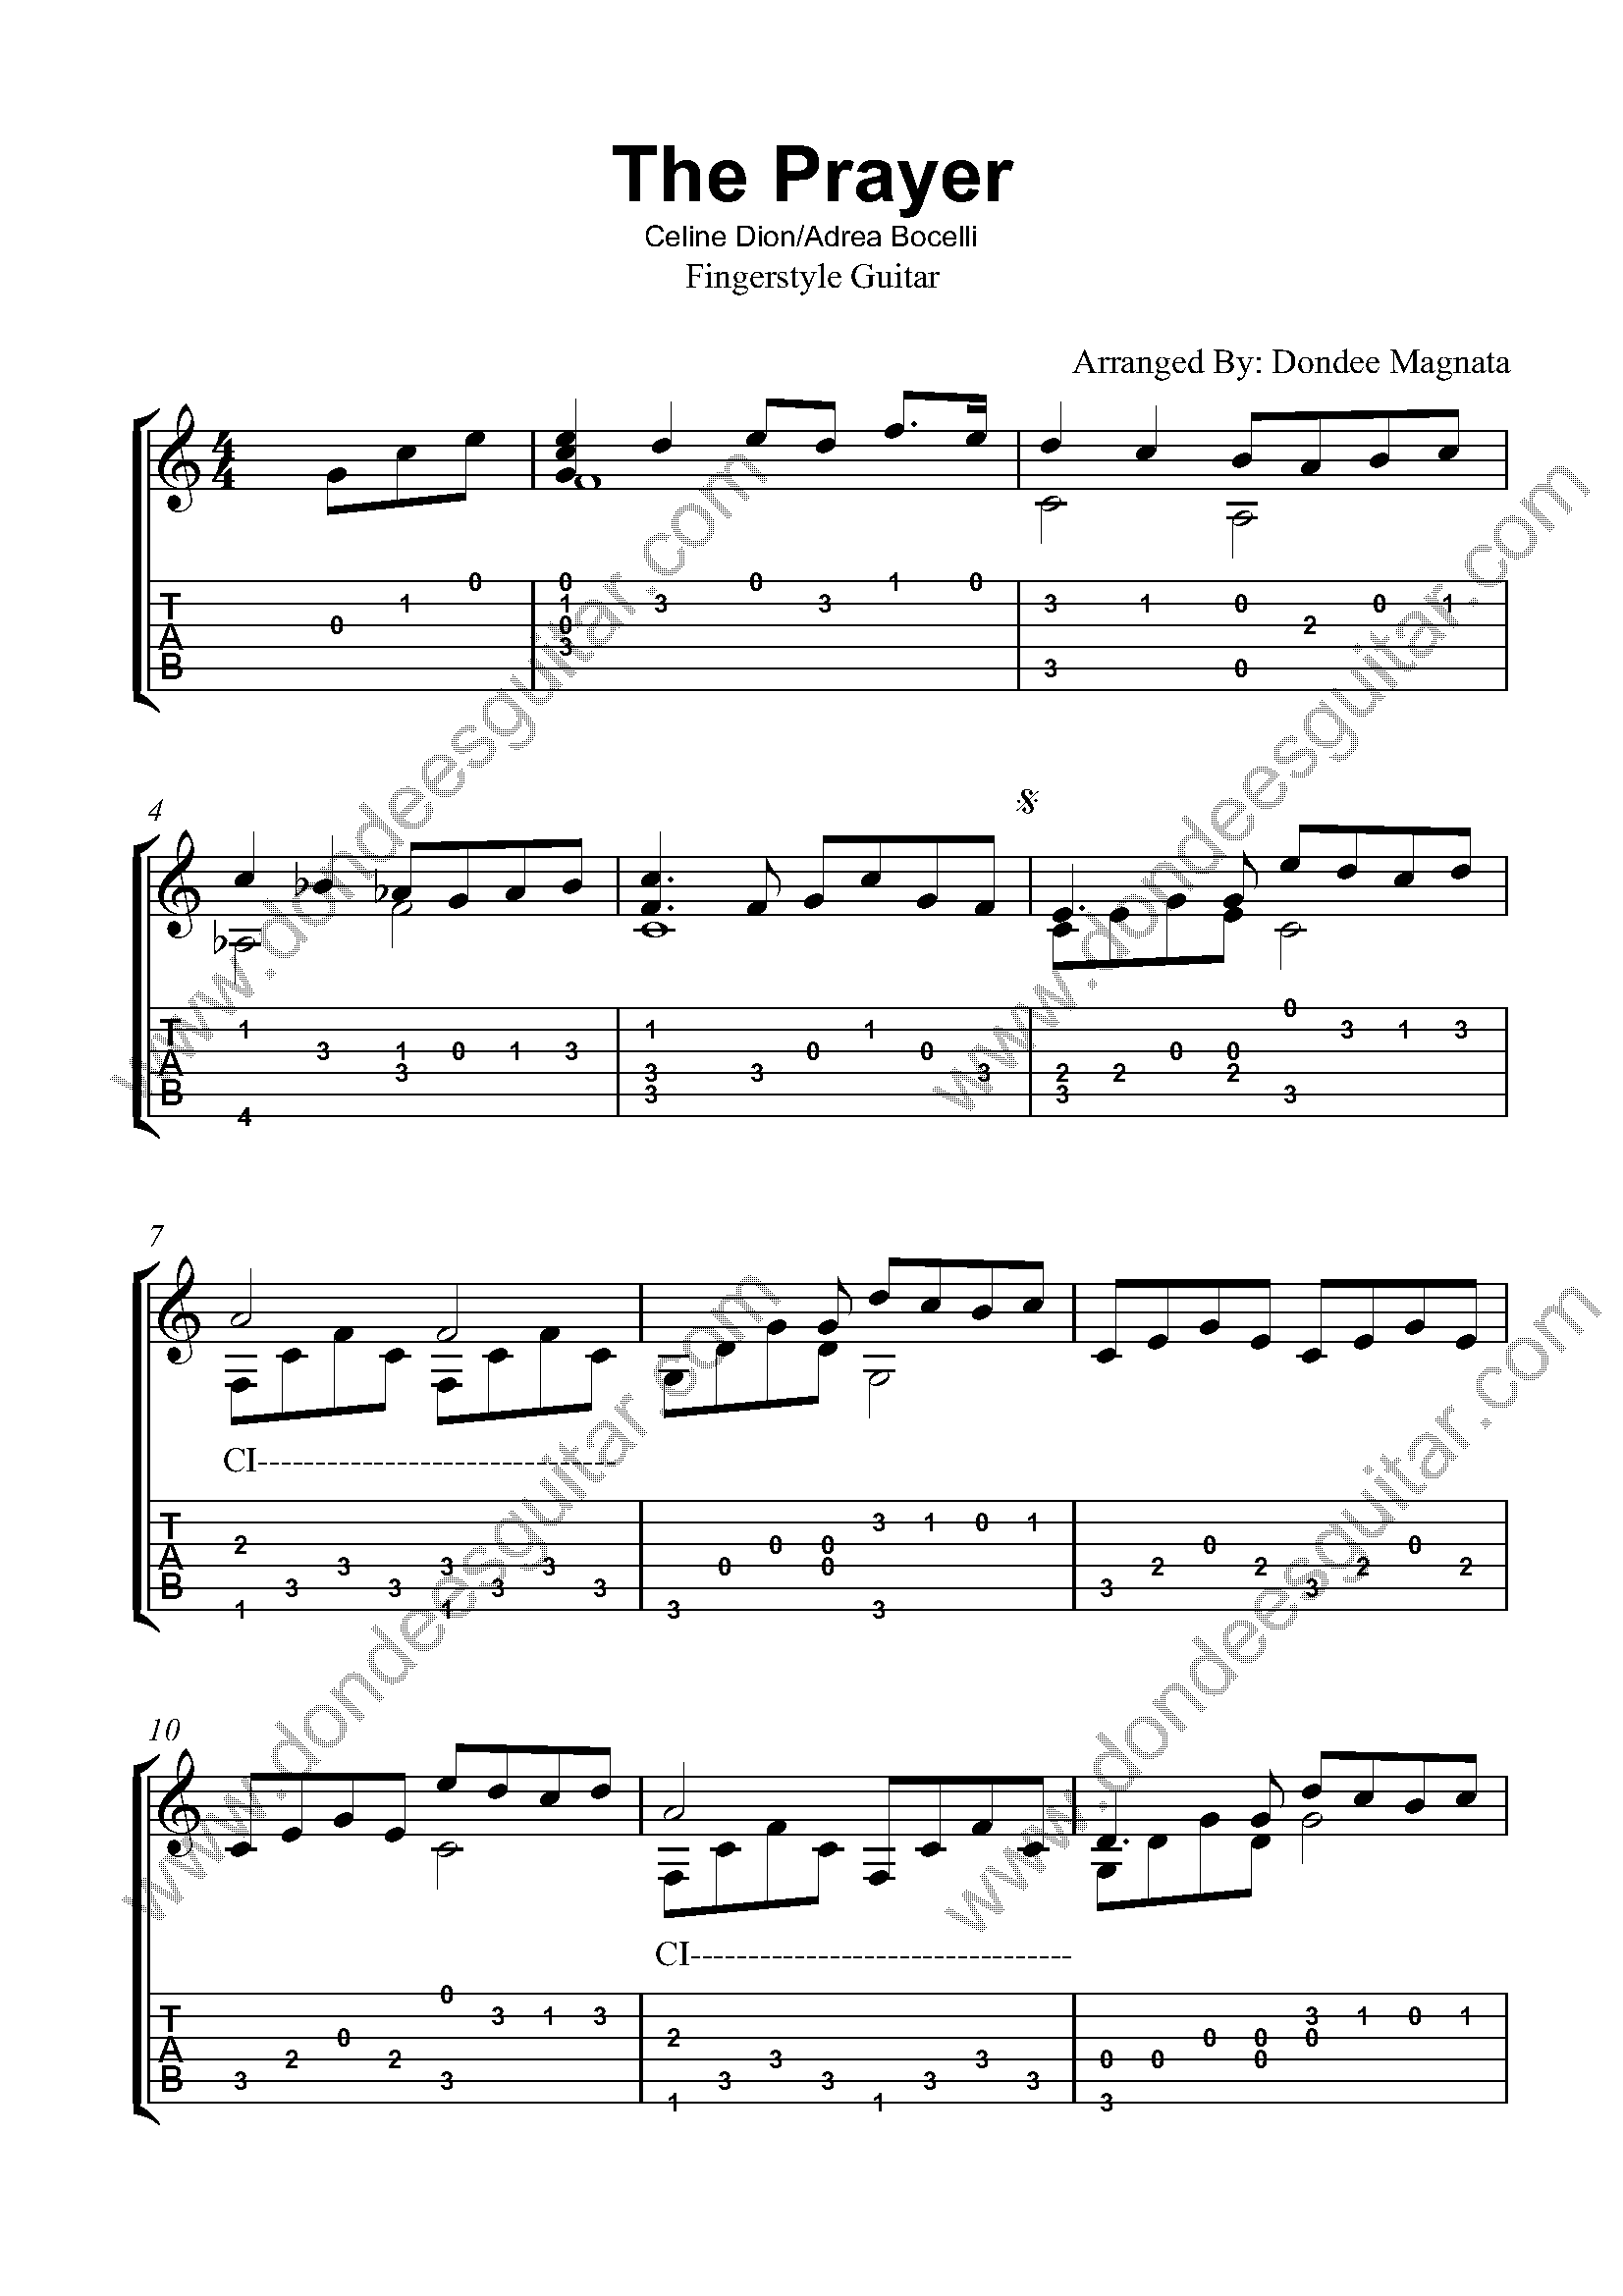 The Prayer Fingerstyle Tabs